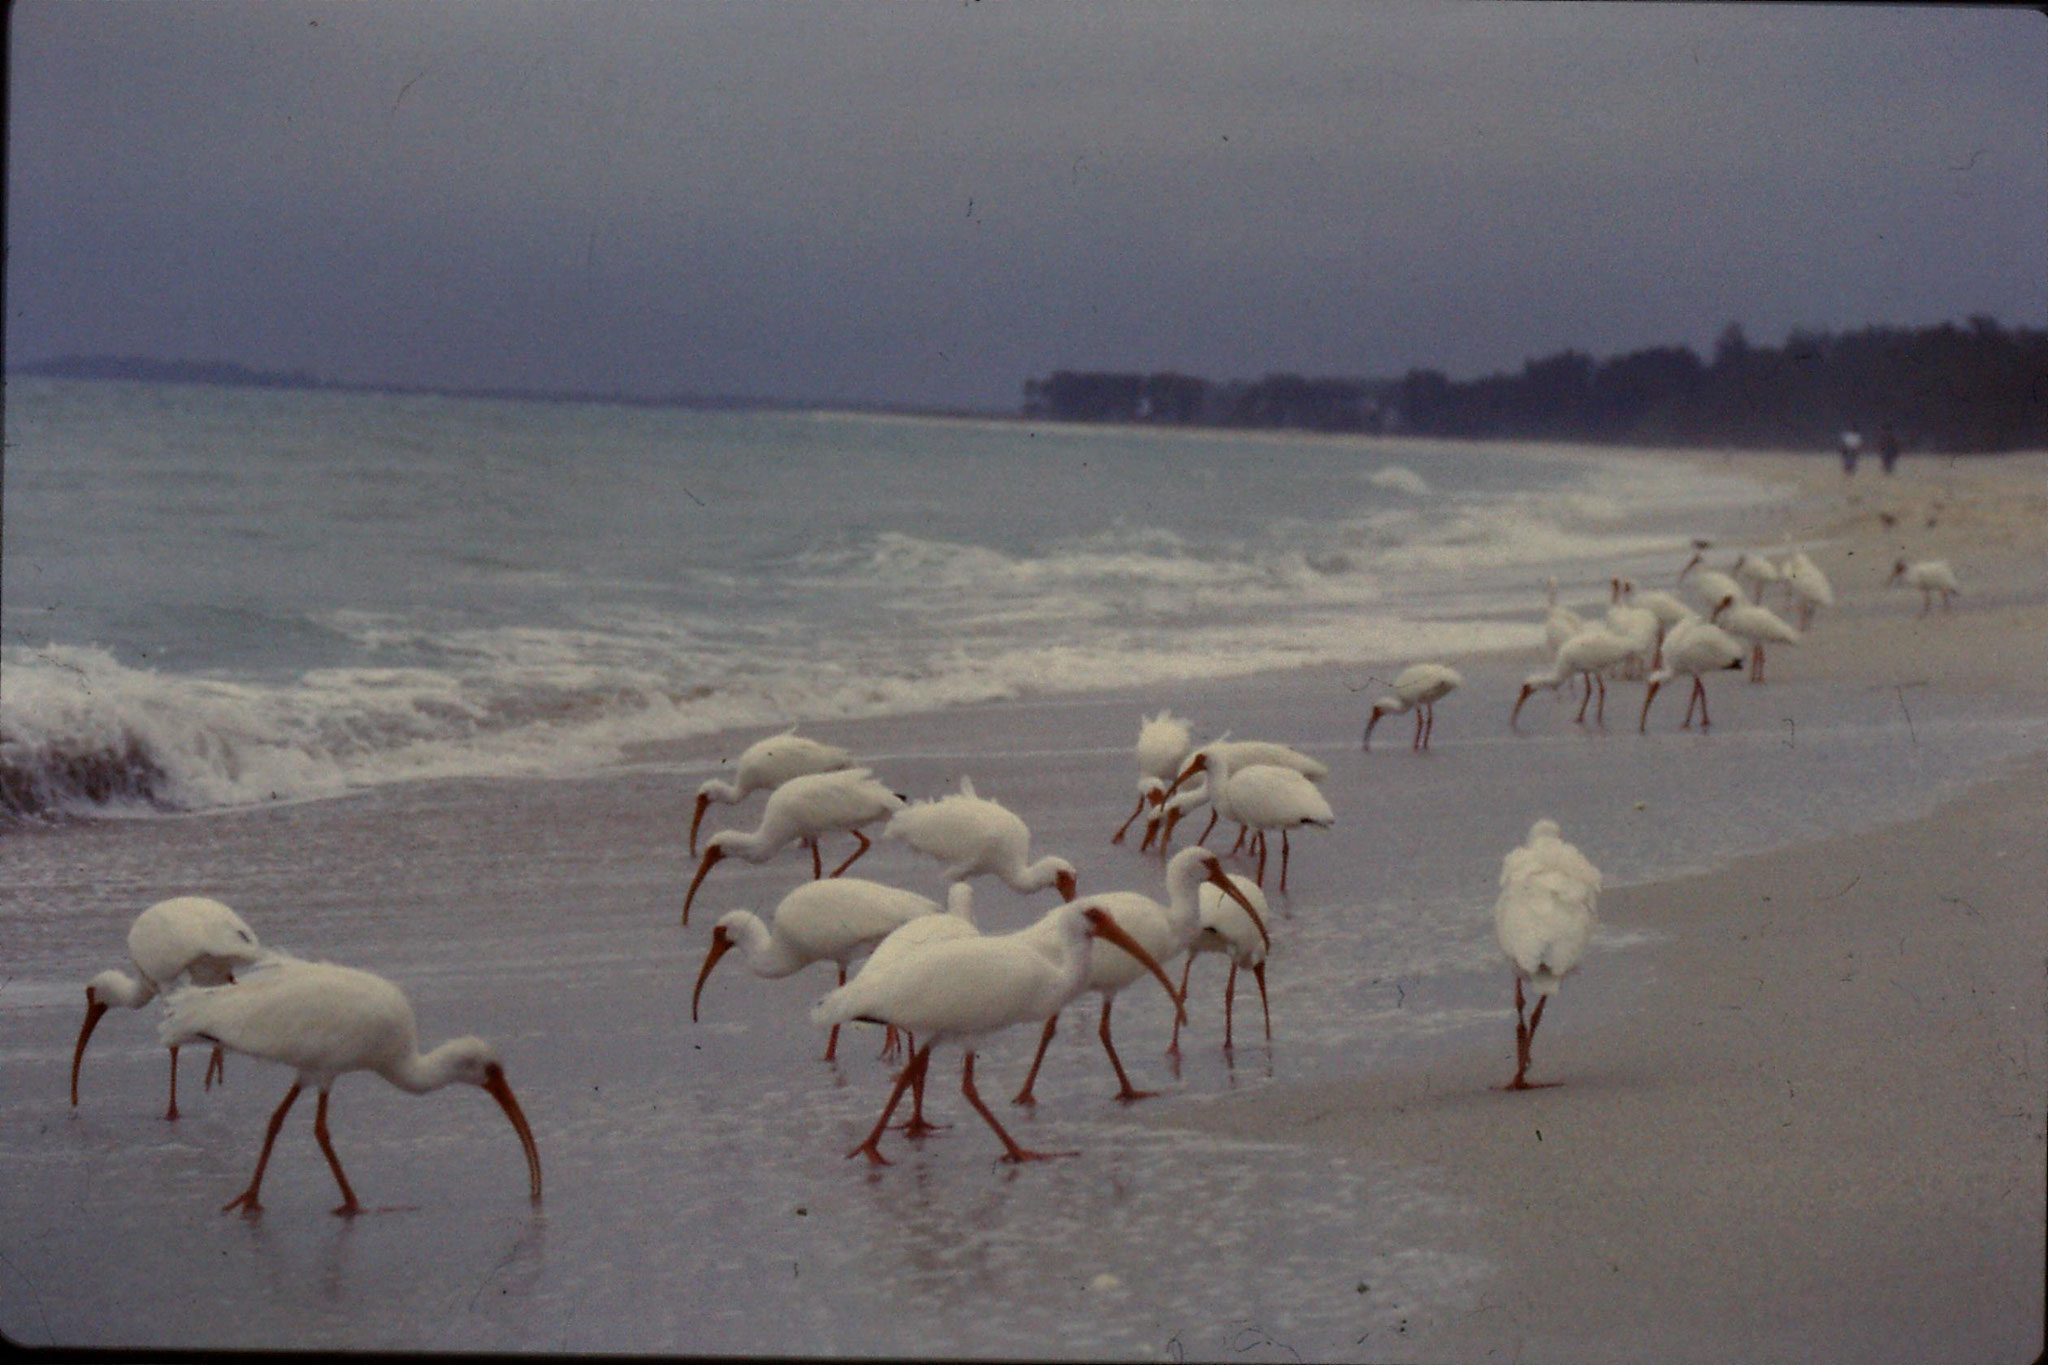 25/2/1991: 3: Sanibel Florida white ibises